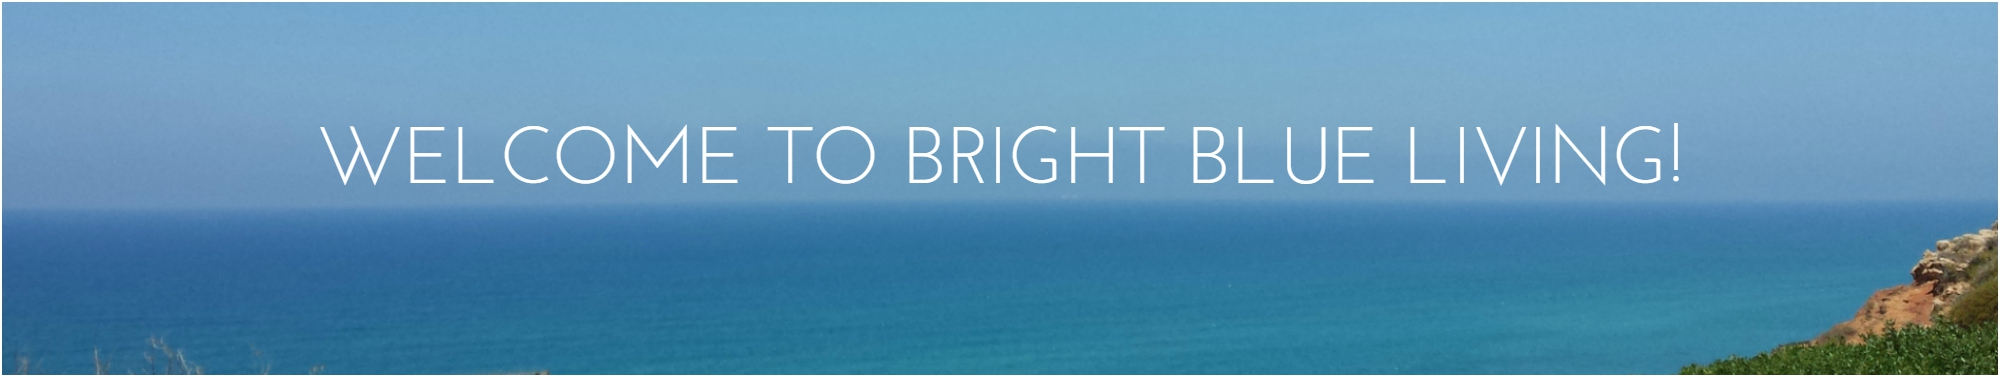 Welcome to Bright Blue Living